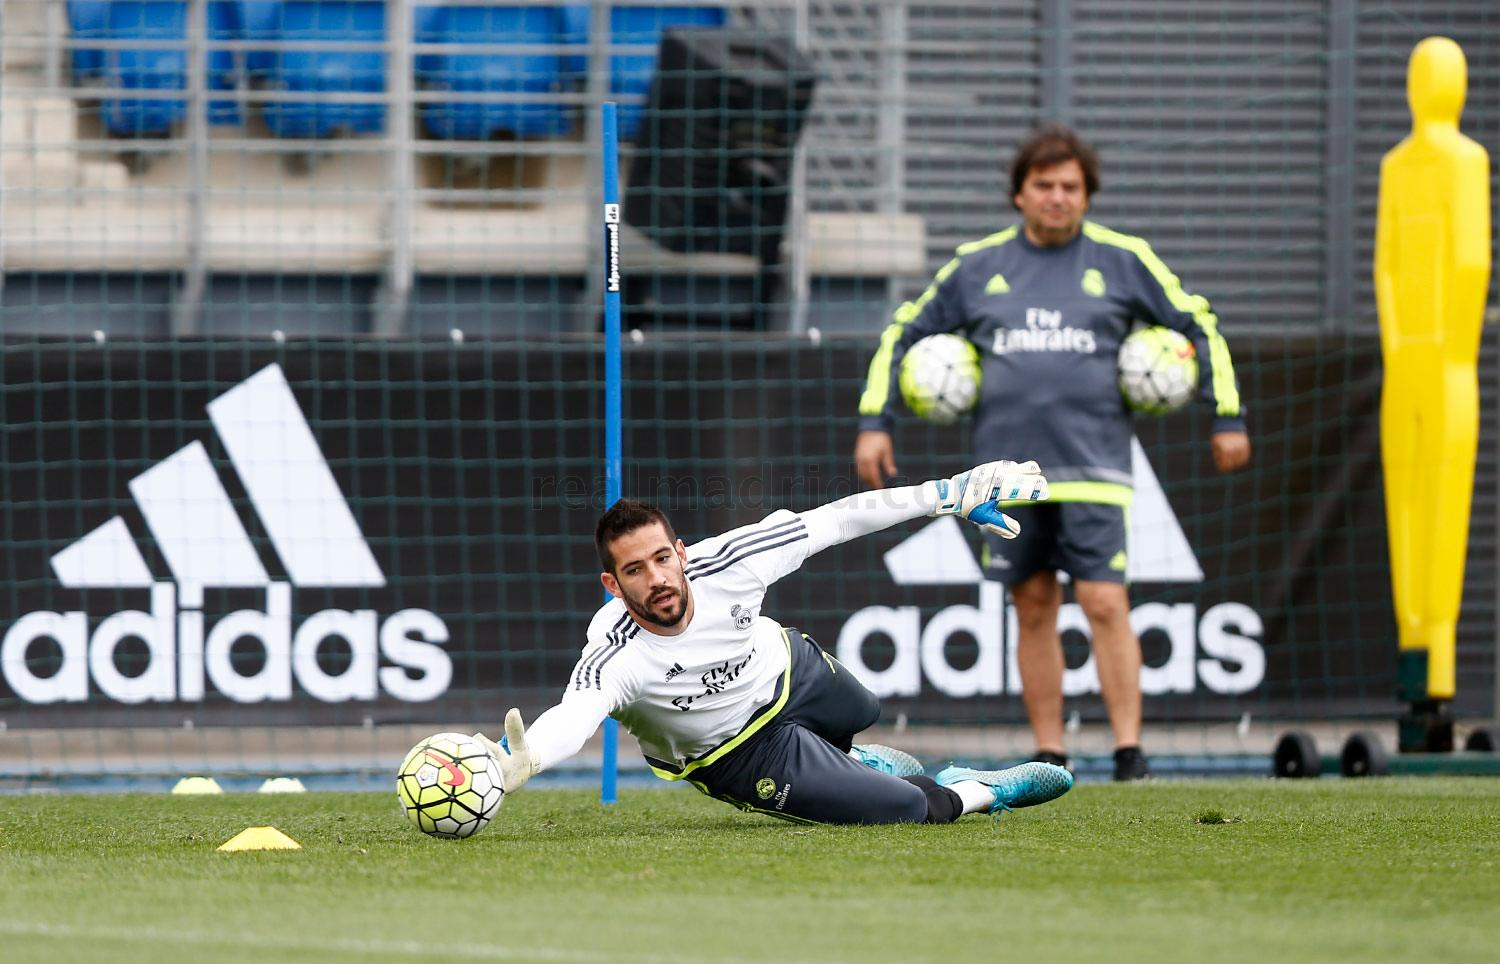 Real Madrid - Entrenamiento del Real Madrid - 05-10-2015